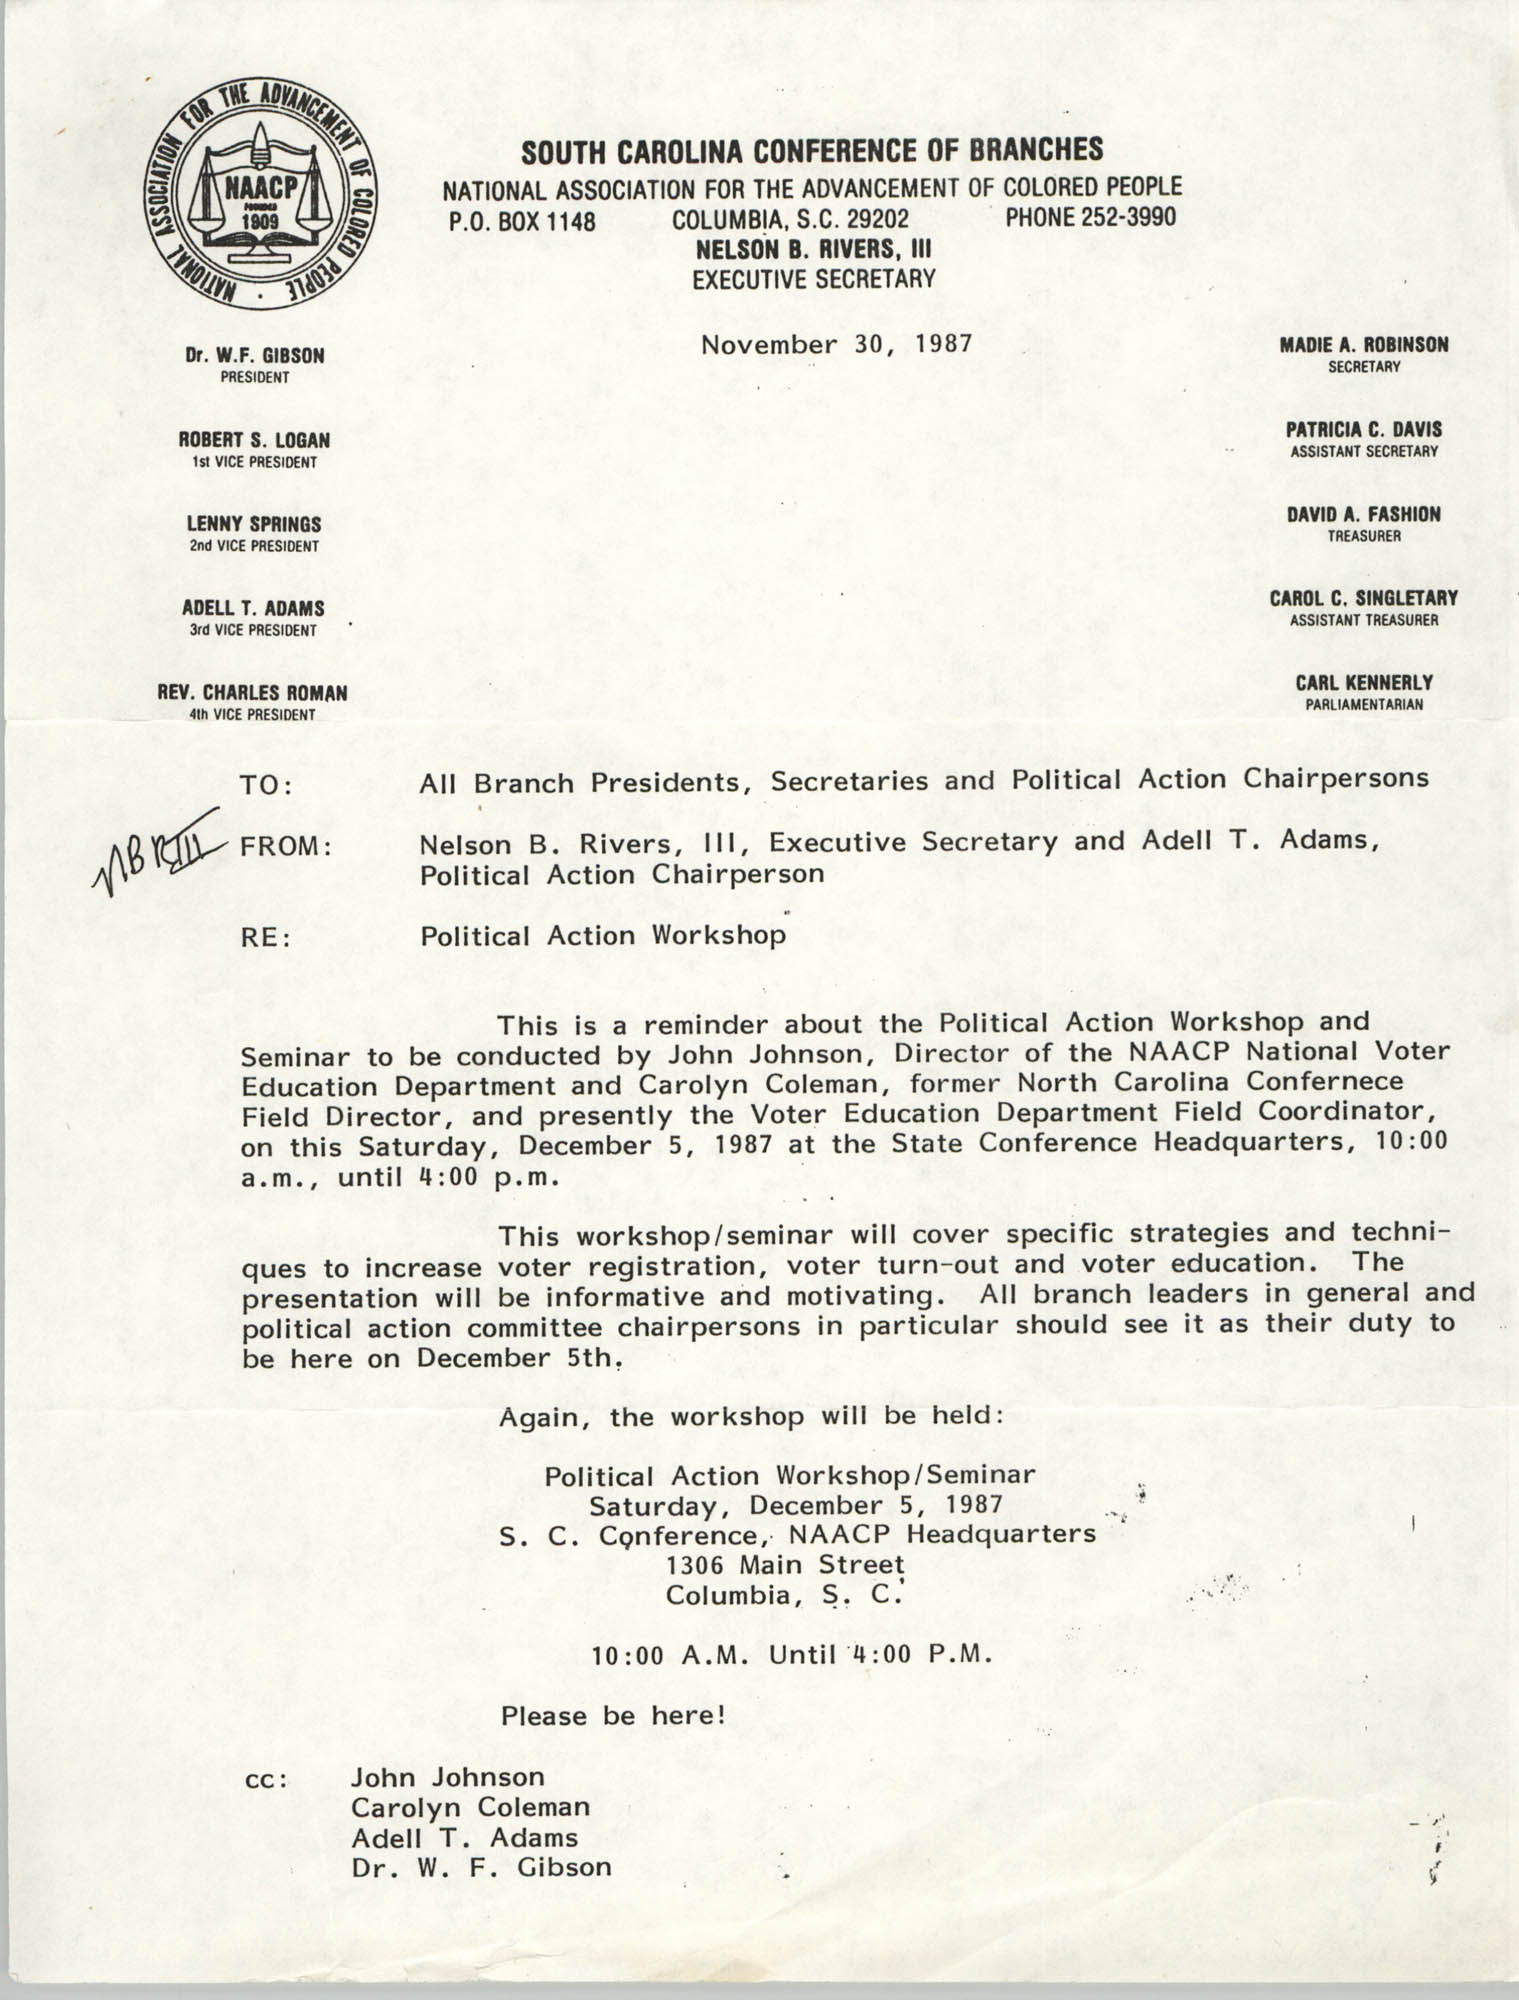 South Carolina Conference of Branches of the NAACP Memorandum, November 30, 1987